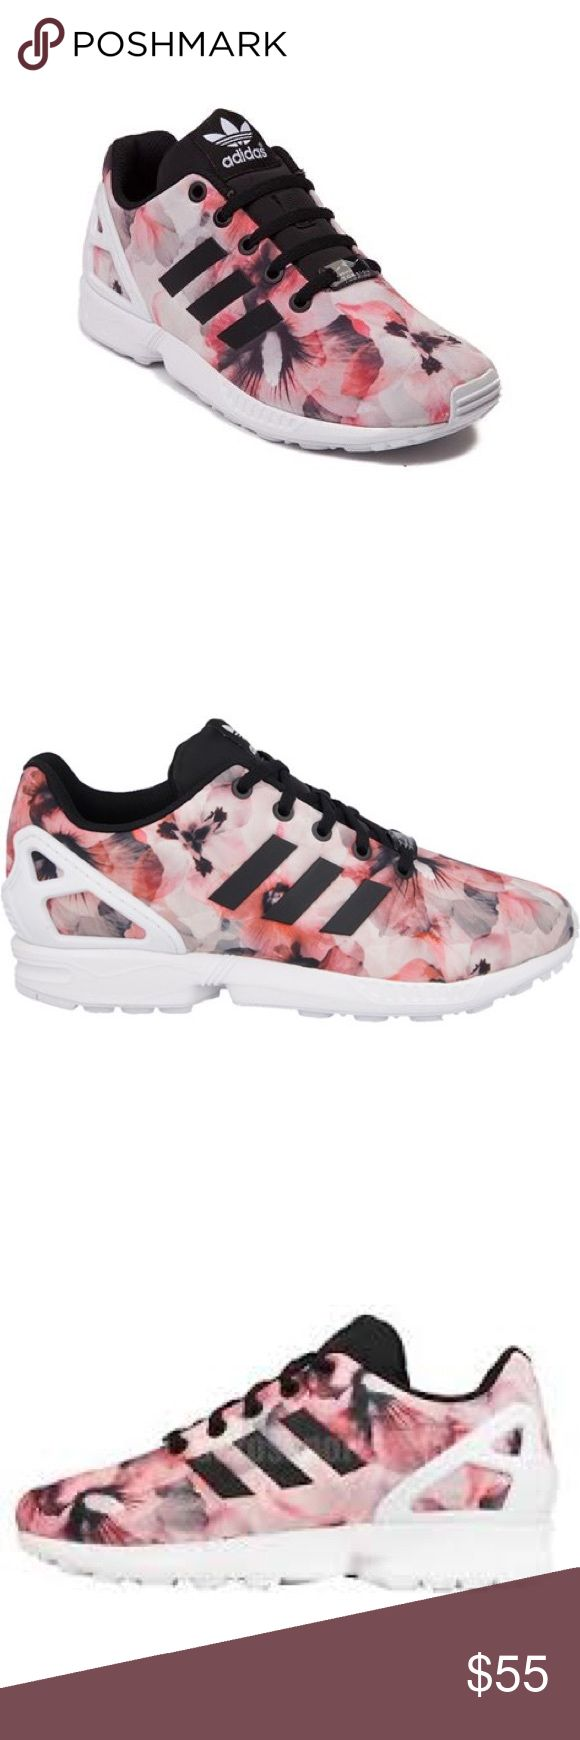 Adidas Zx flux floral In good condition, no box adidas Shoes Athletic Shoes